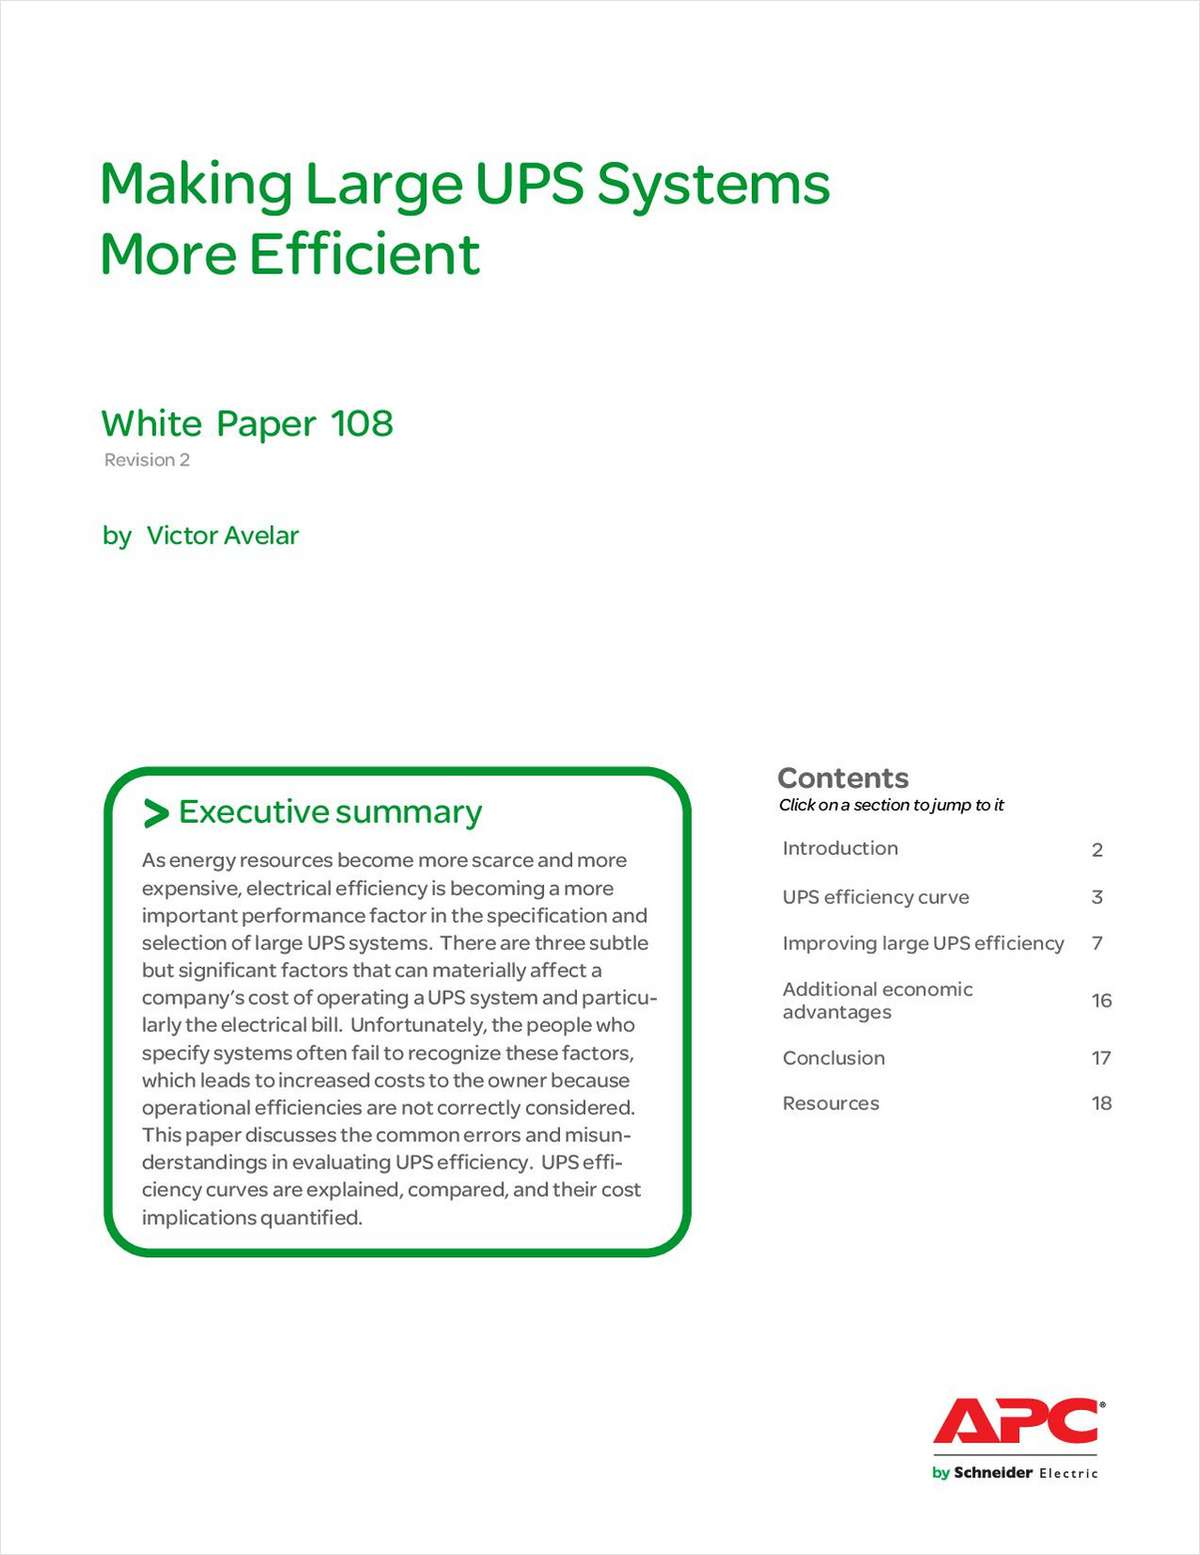 Making Large UPS Systems More Efficient